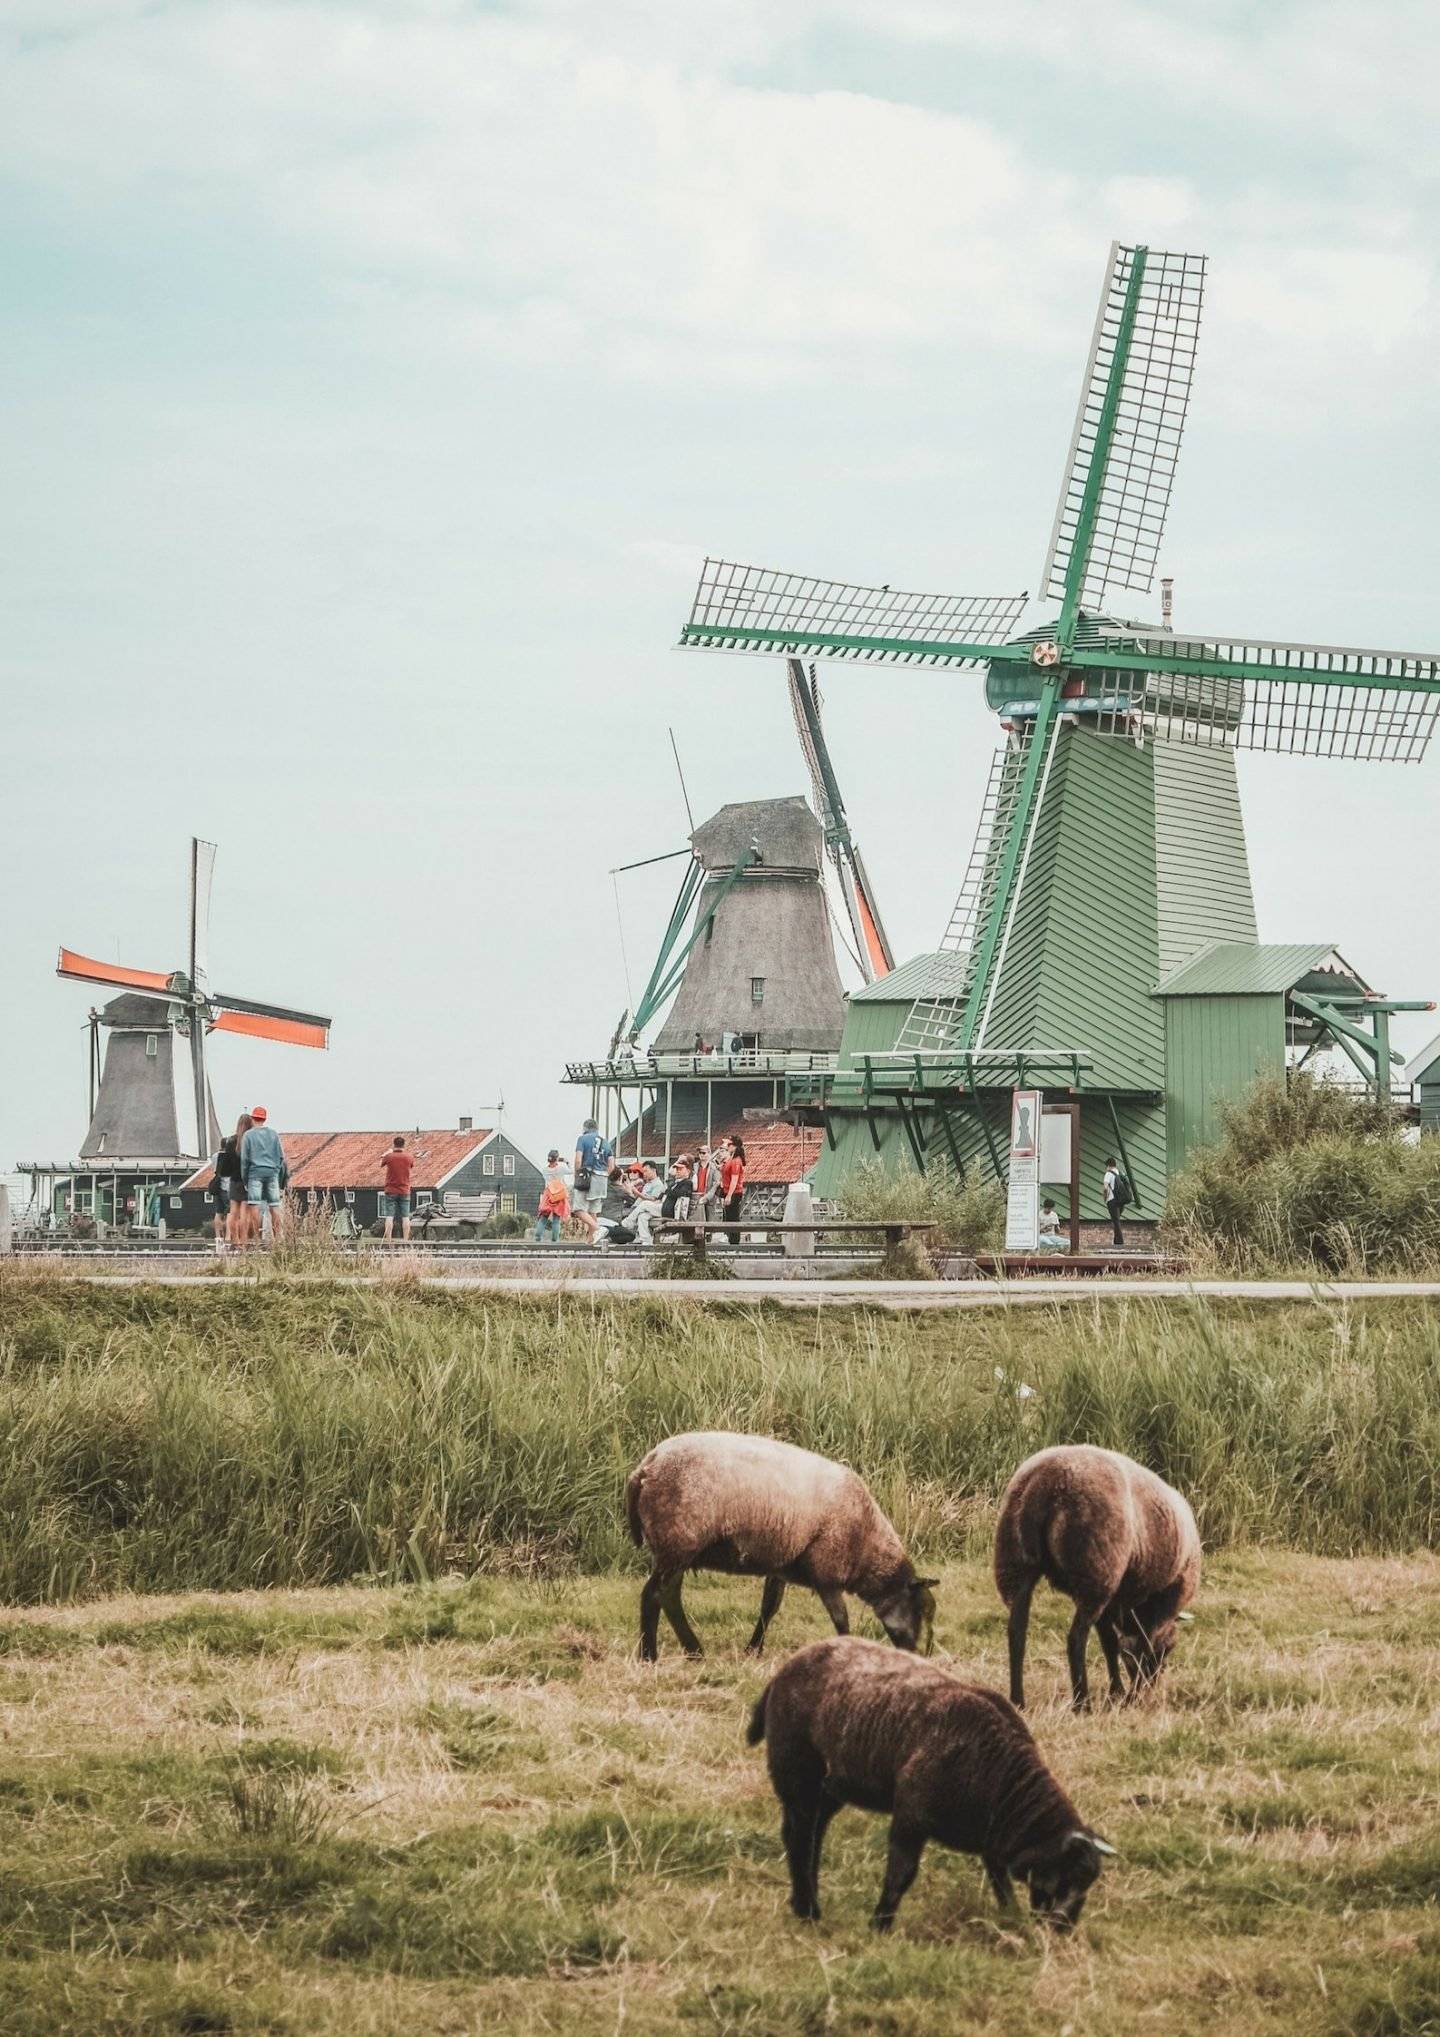 The Netherlands in Pictures